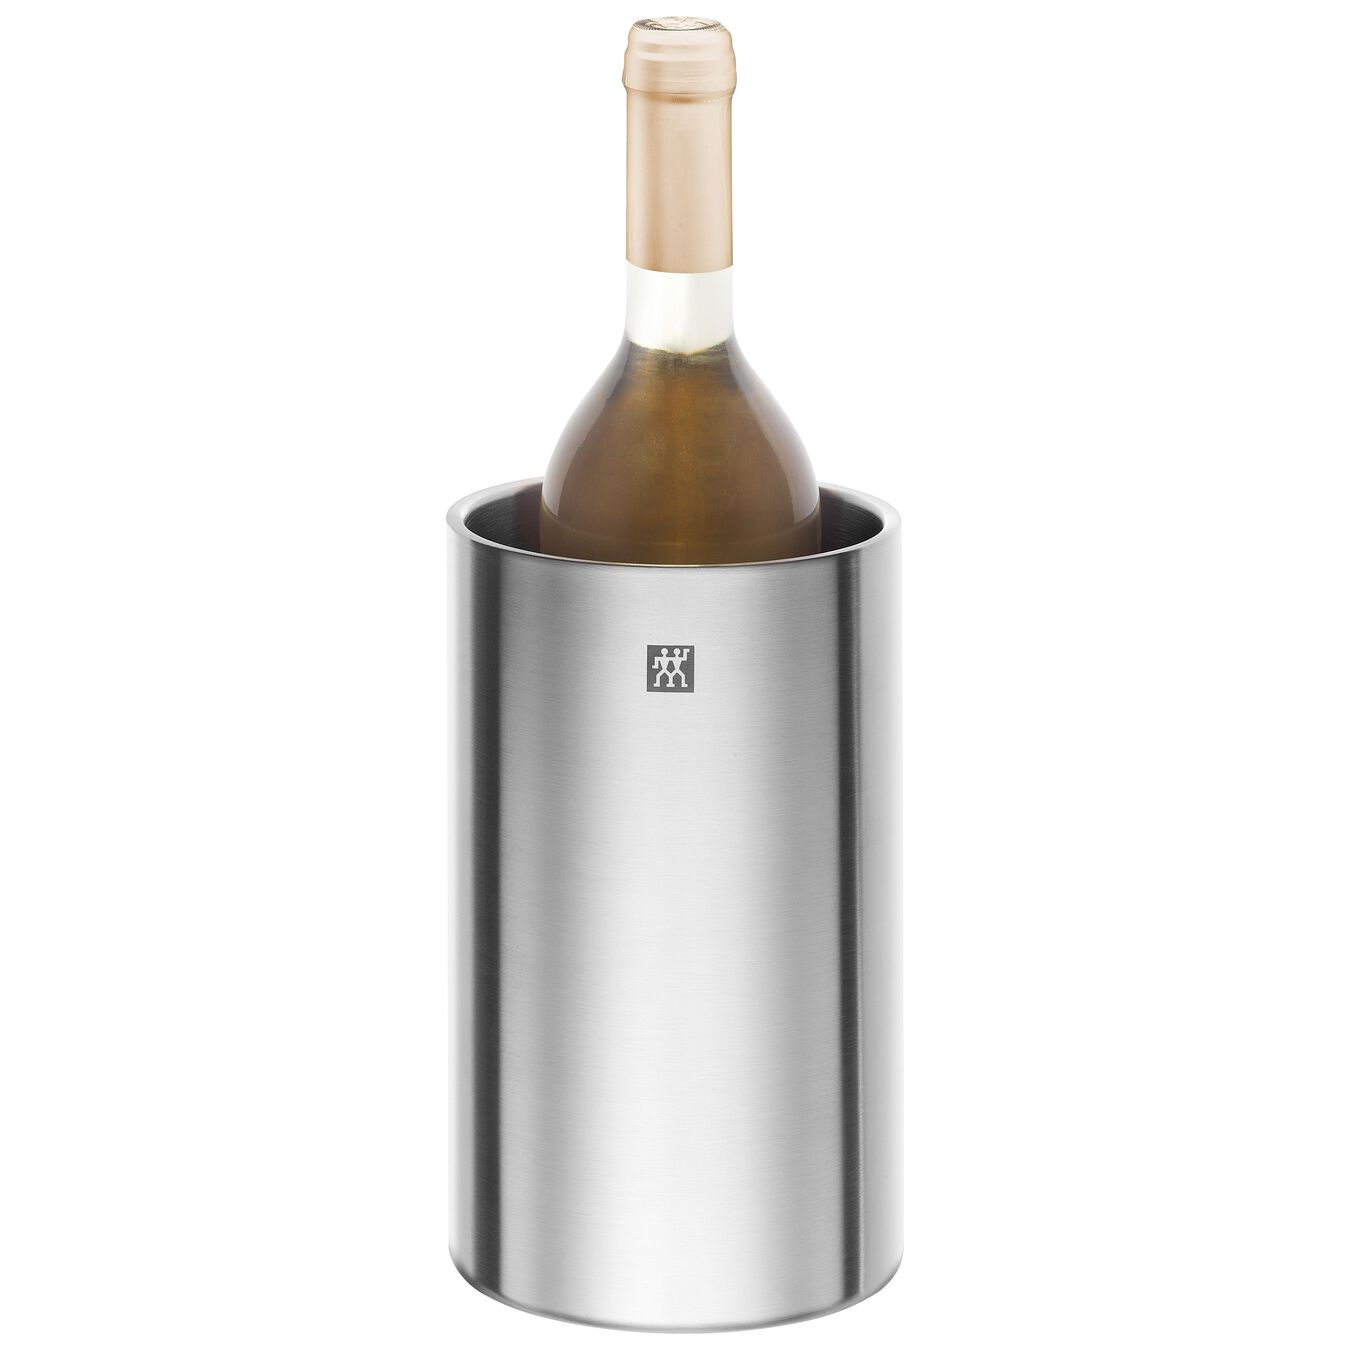 Stainless Steel Wine Bottle Cooler,,large 2